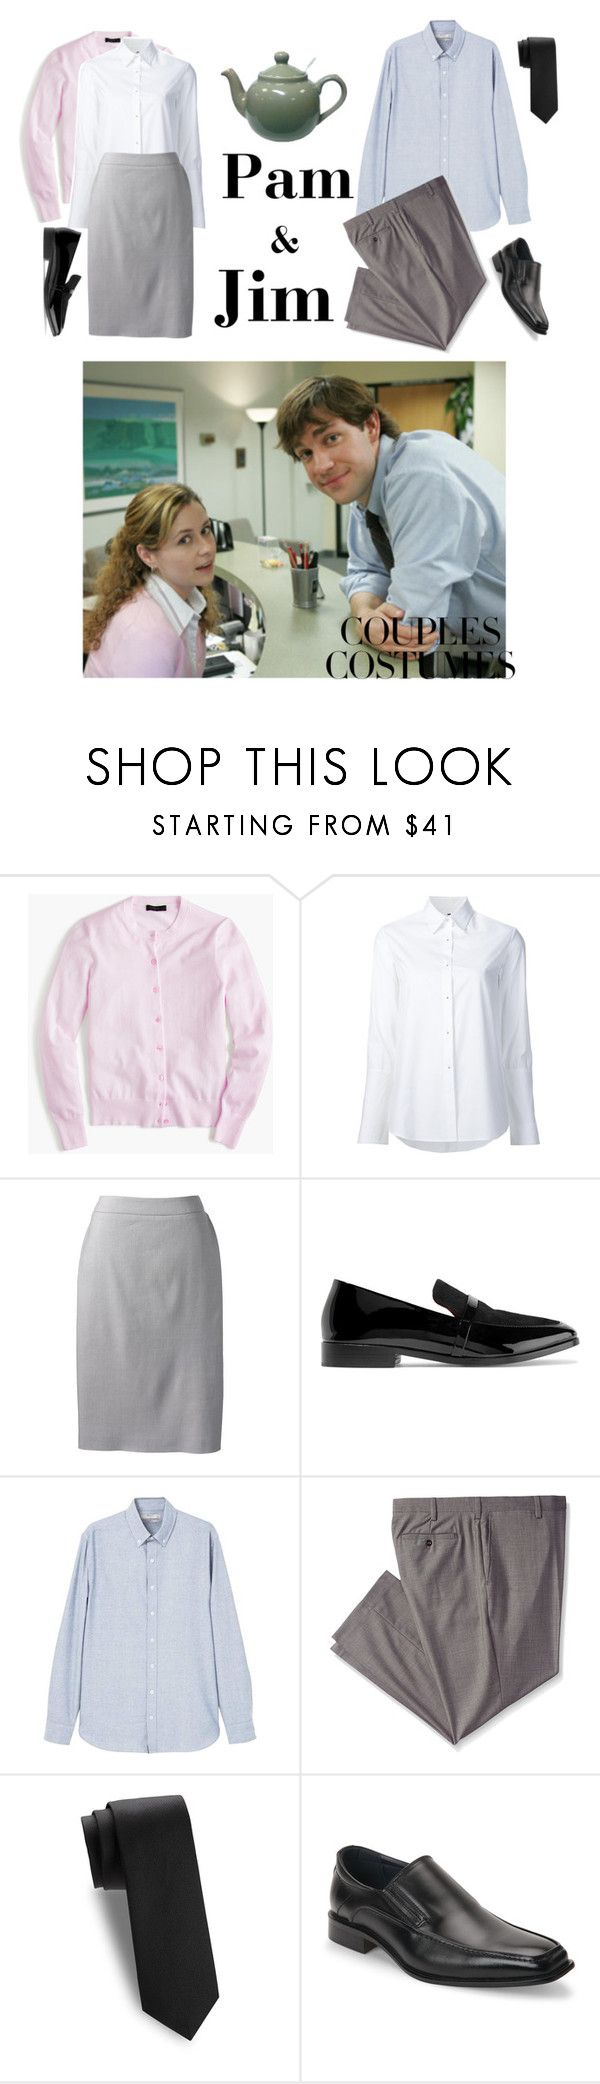 """""""Couple's Costume: Pam and Jim"""" by ghostbustin ❤ liked on Polyvore featuring PAM, J.Crew, Misha Nonoo, Lands' End, NewbarK, MANGO MAN, Louis Raphael, Saks Fifth Avenue and Joseph Abboud"""